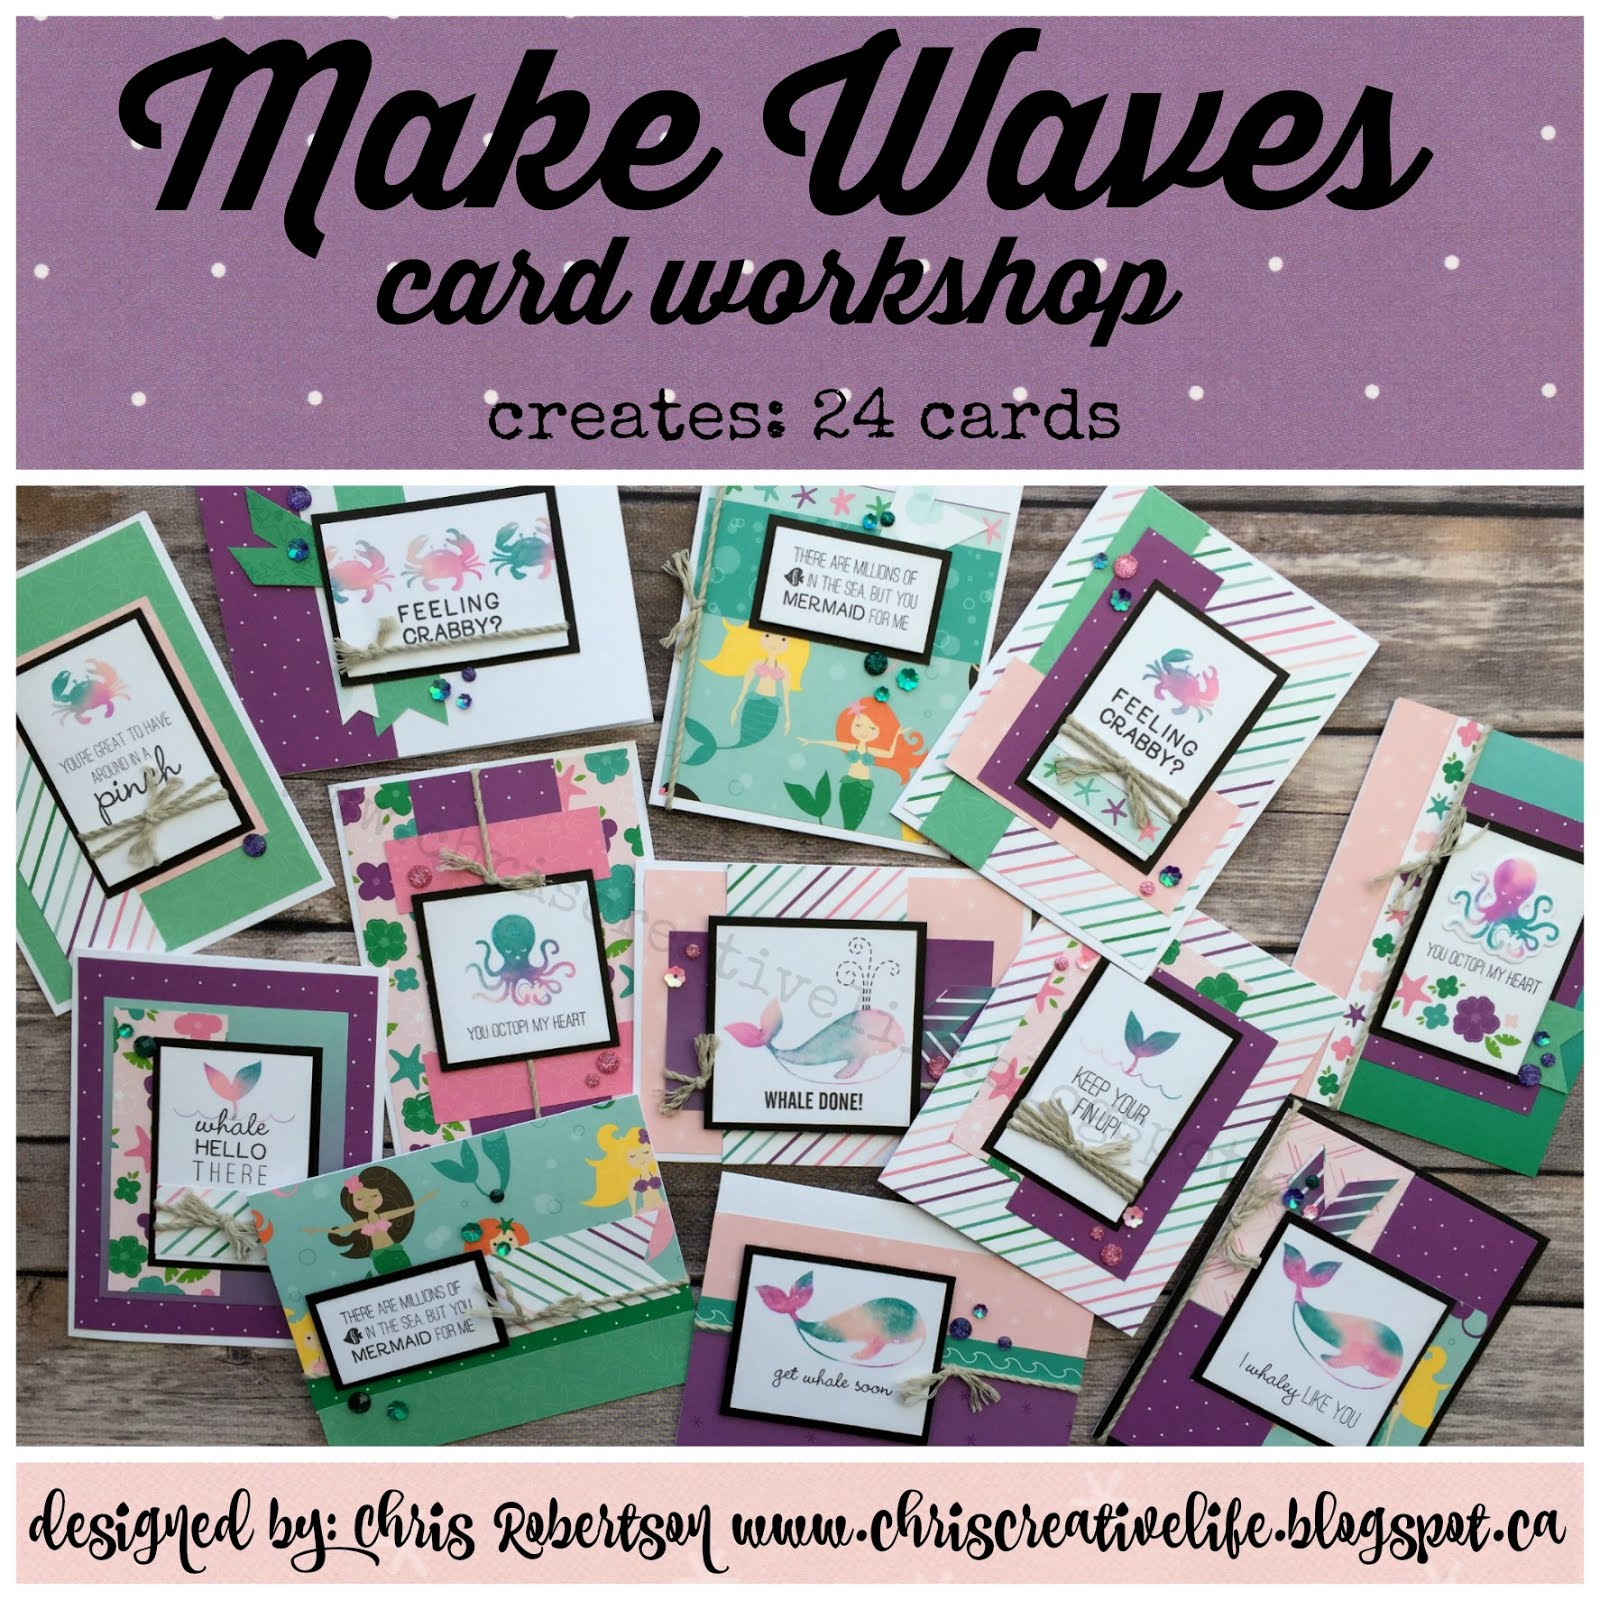 Make Waves Cardmaking Workshop